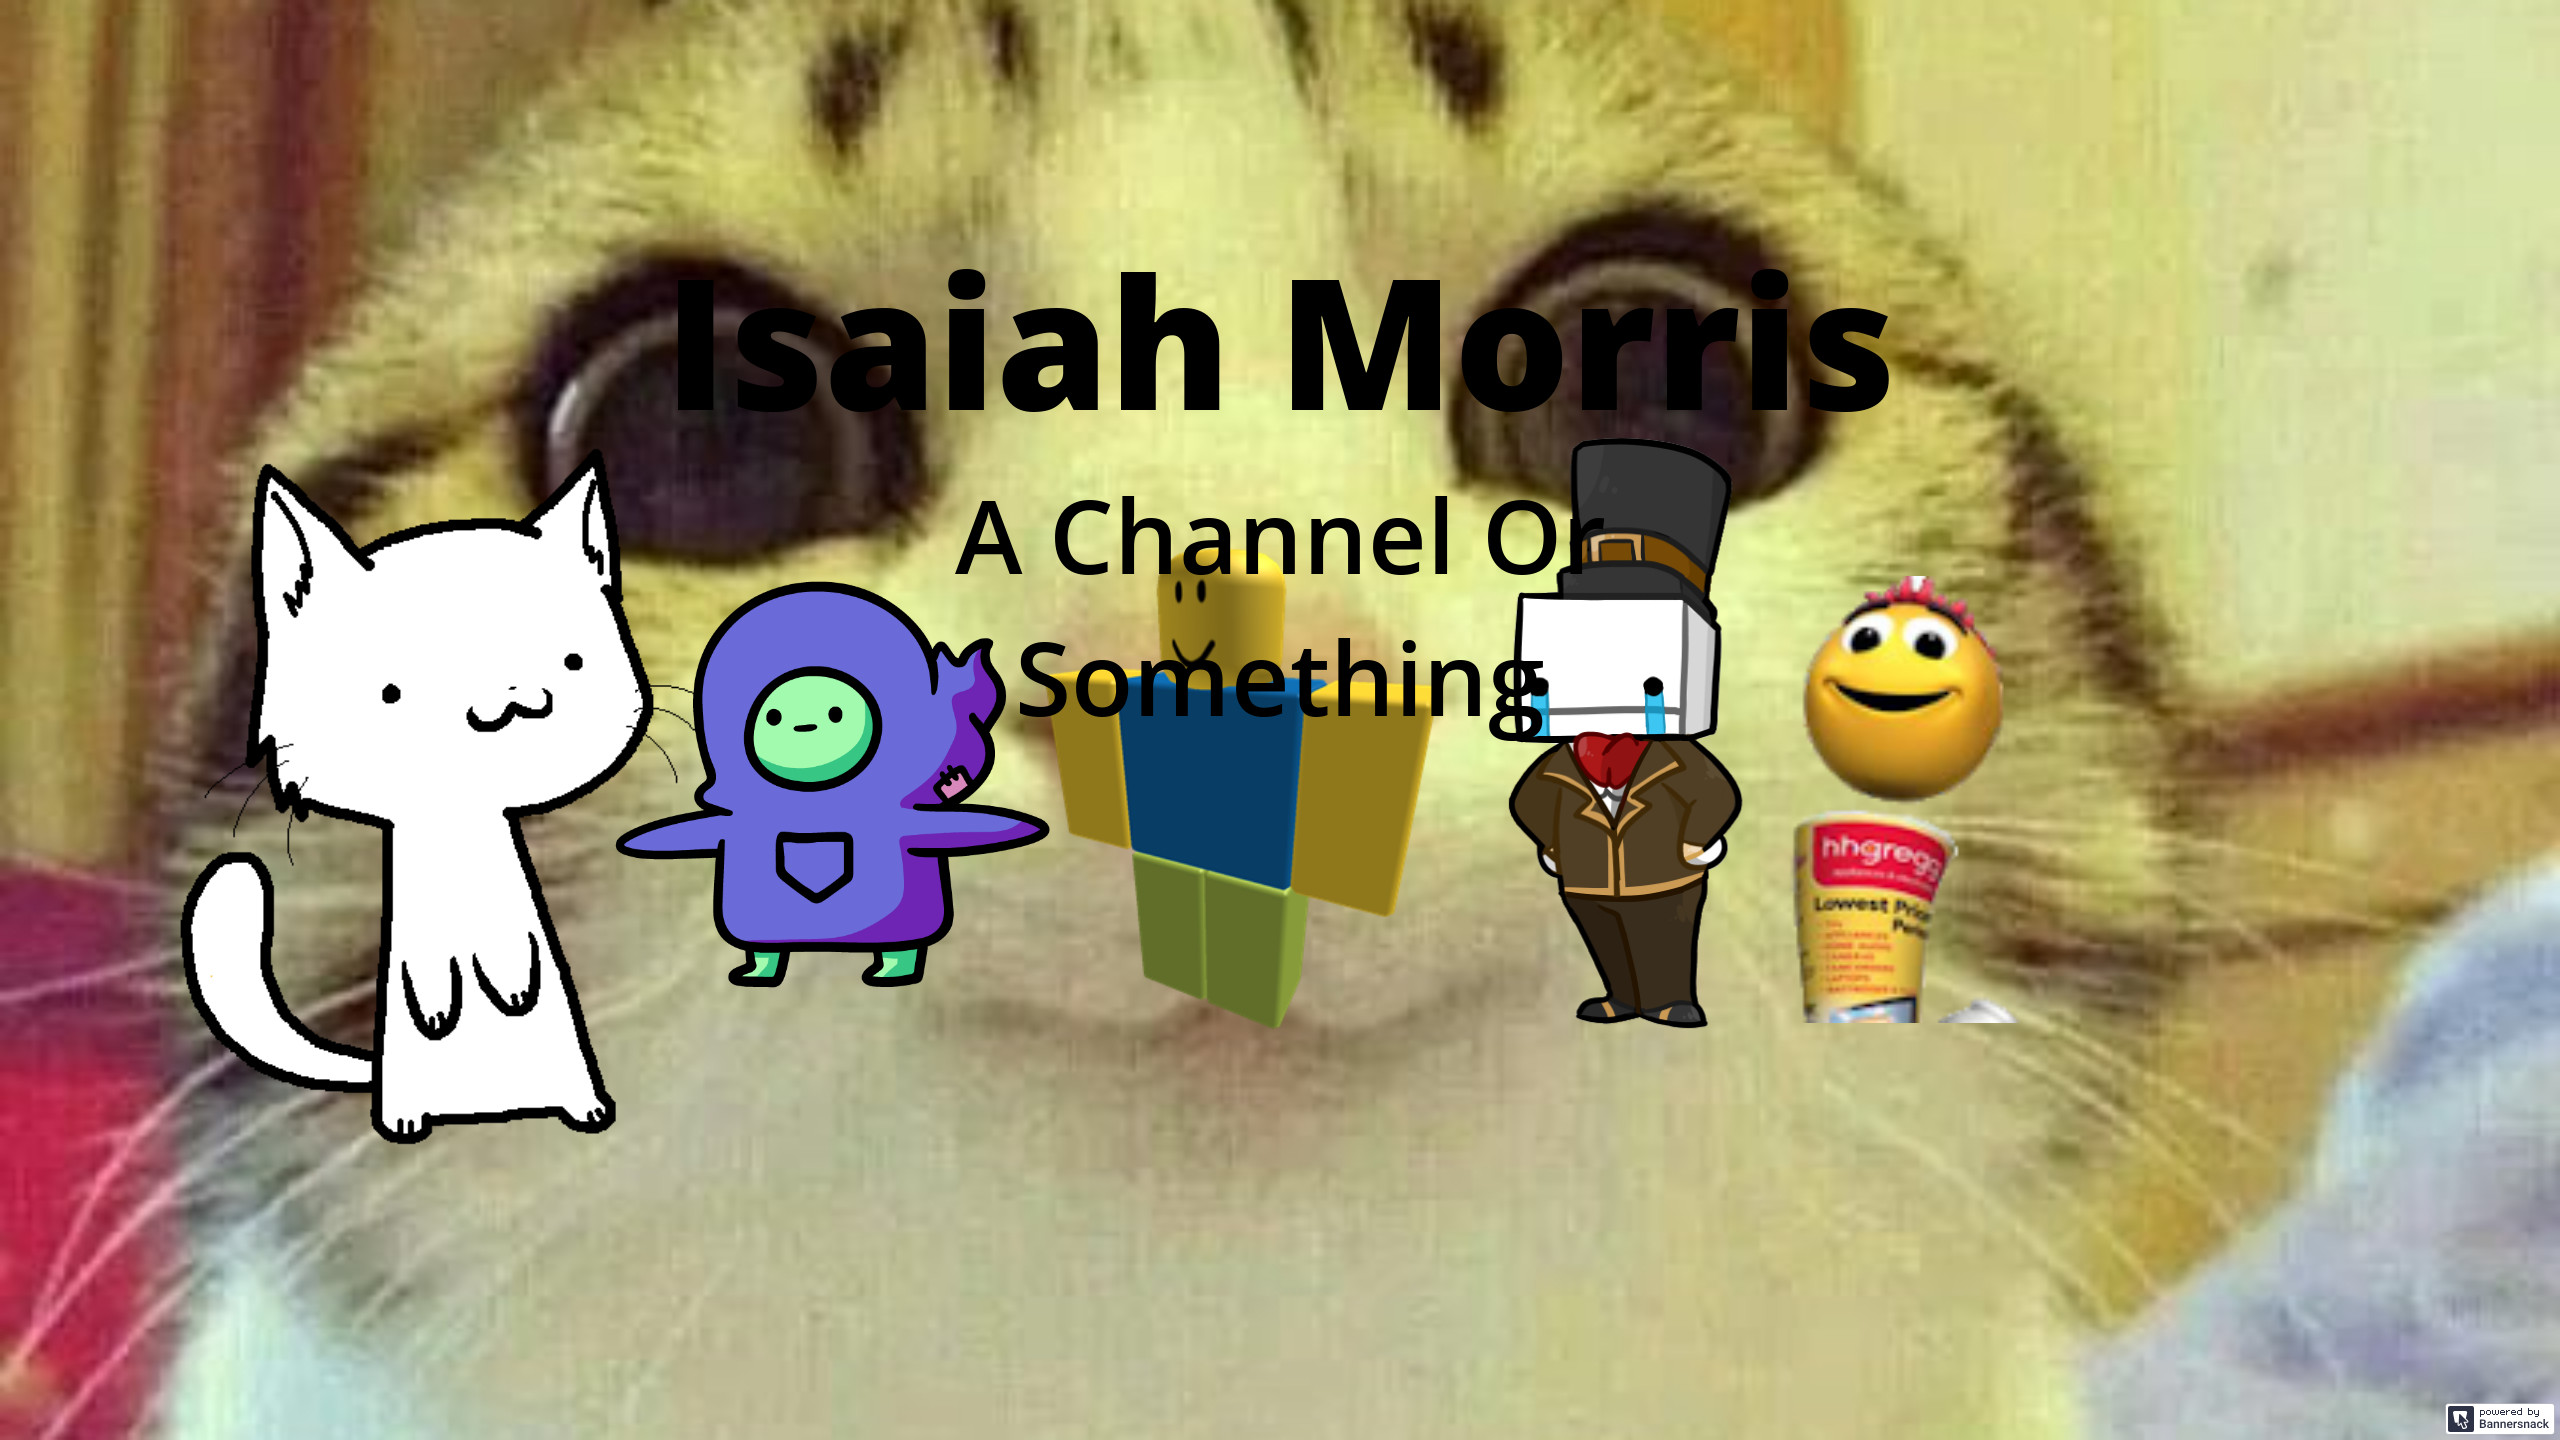 Isaiah Morris (Deleted Youtube Channel)